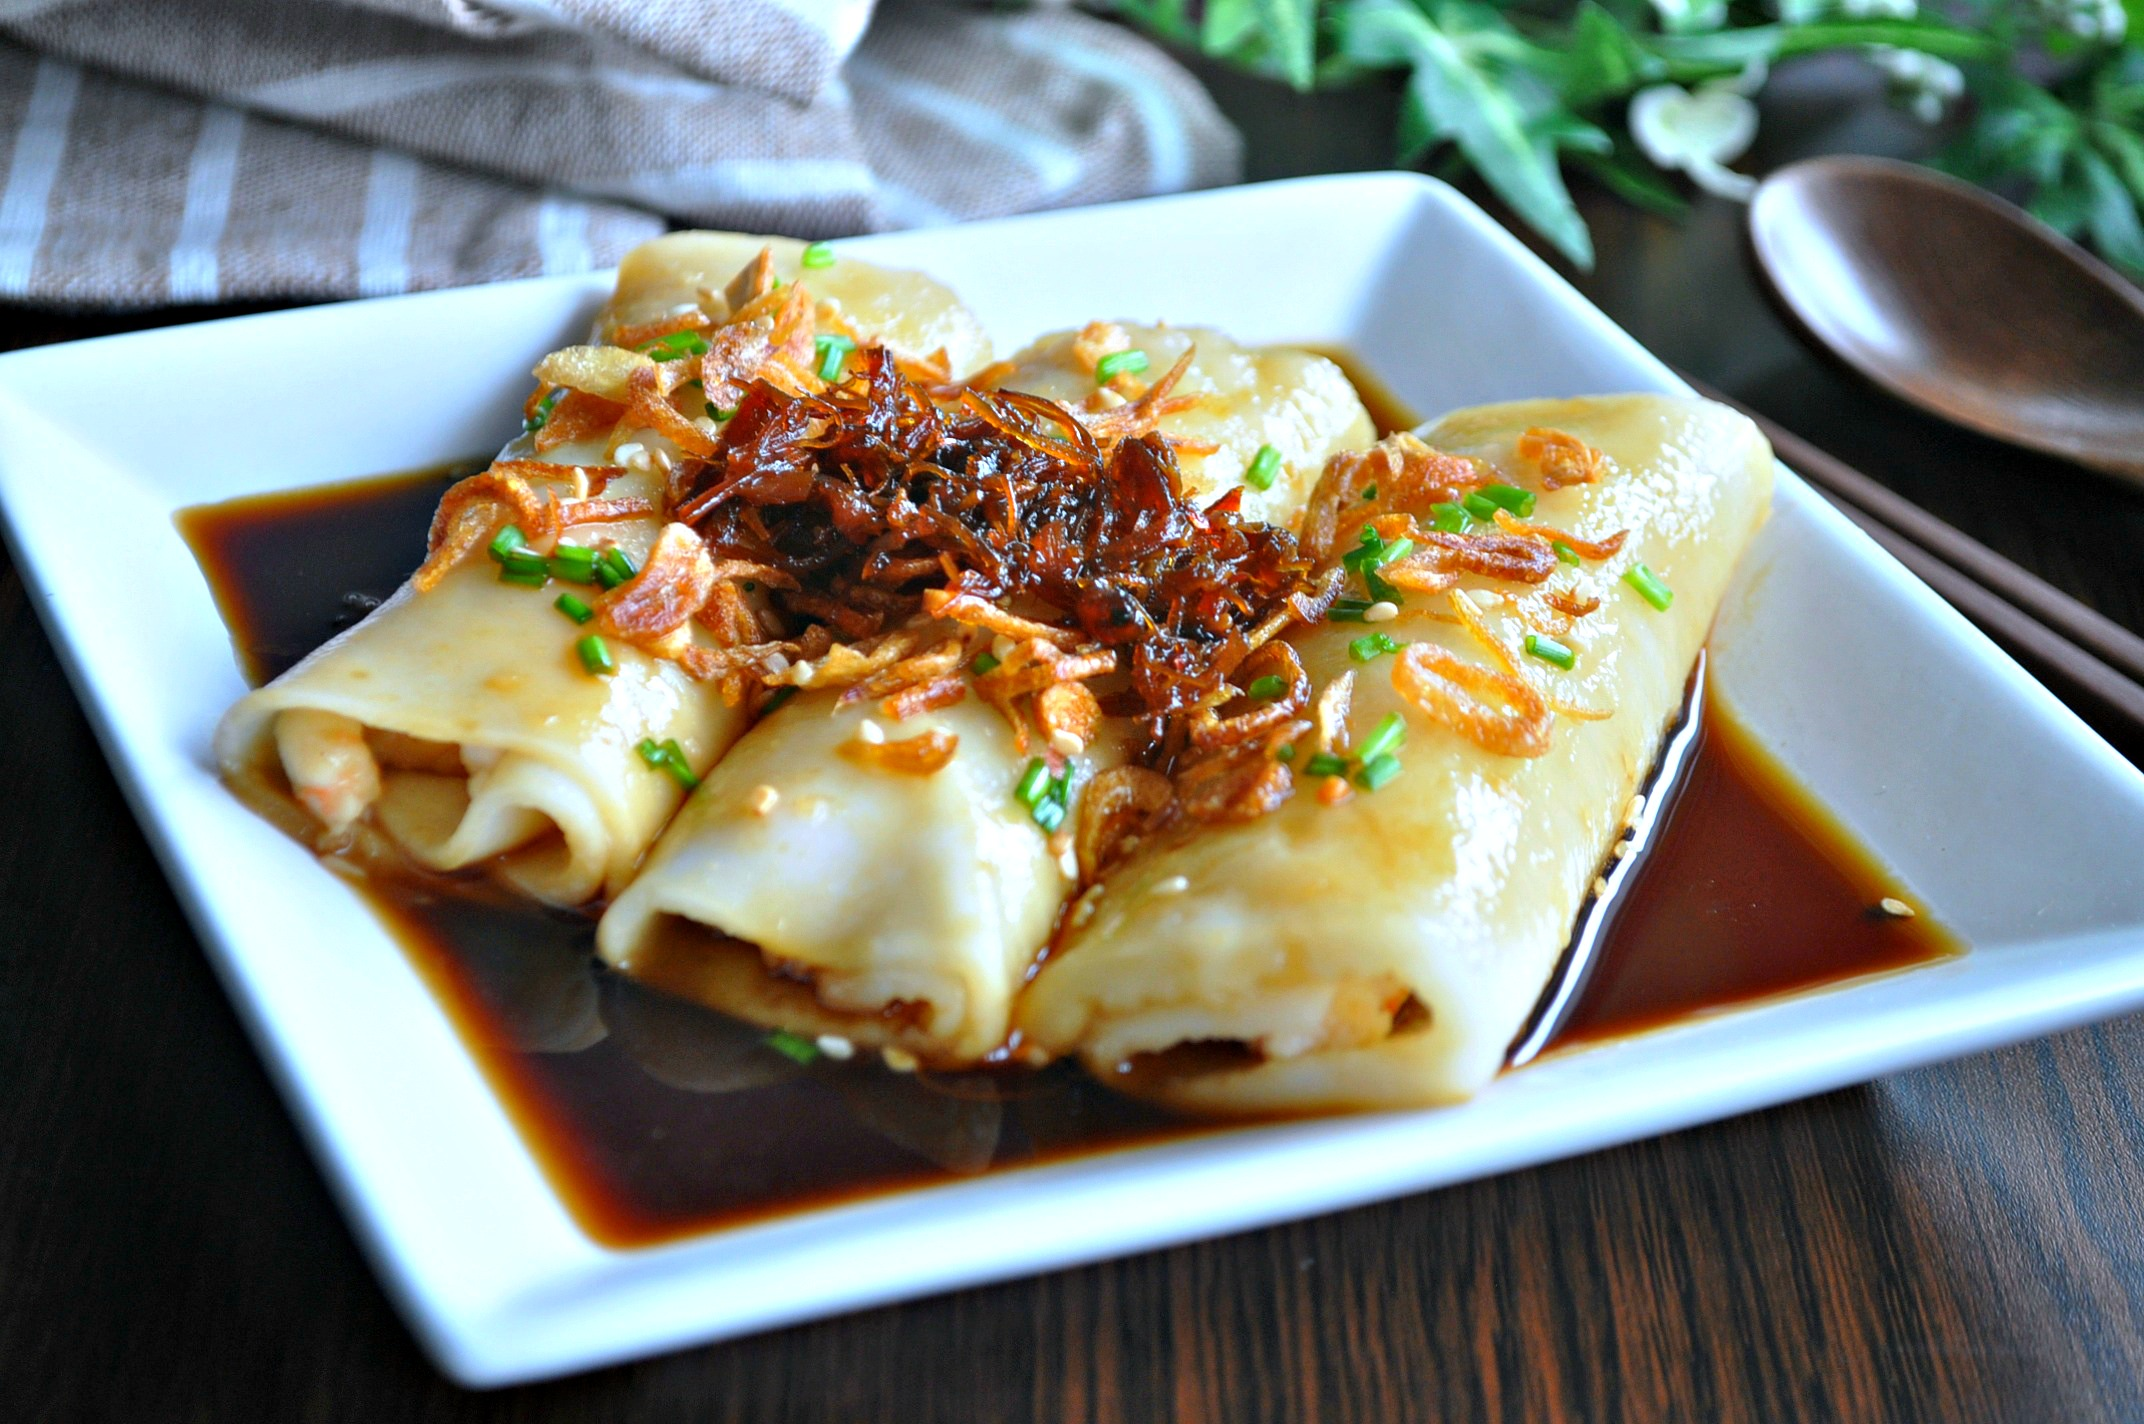 Chinese Style Home Decor Hong Kong Style Chee Cheong Fun 港式猪肠粉 Eat What Tonight